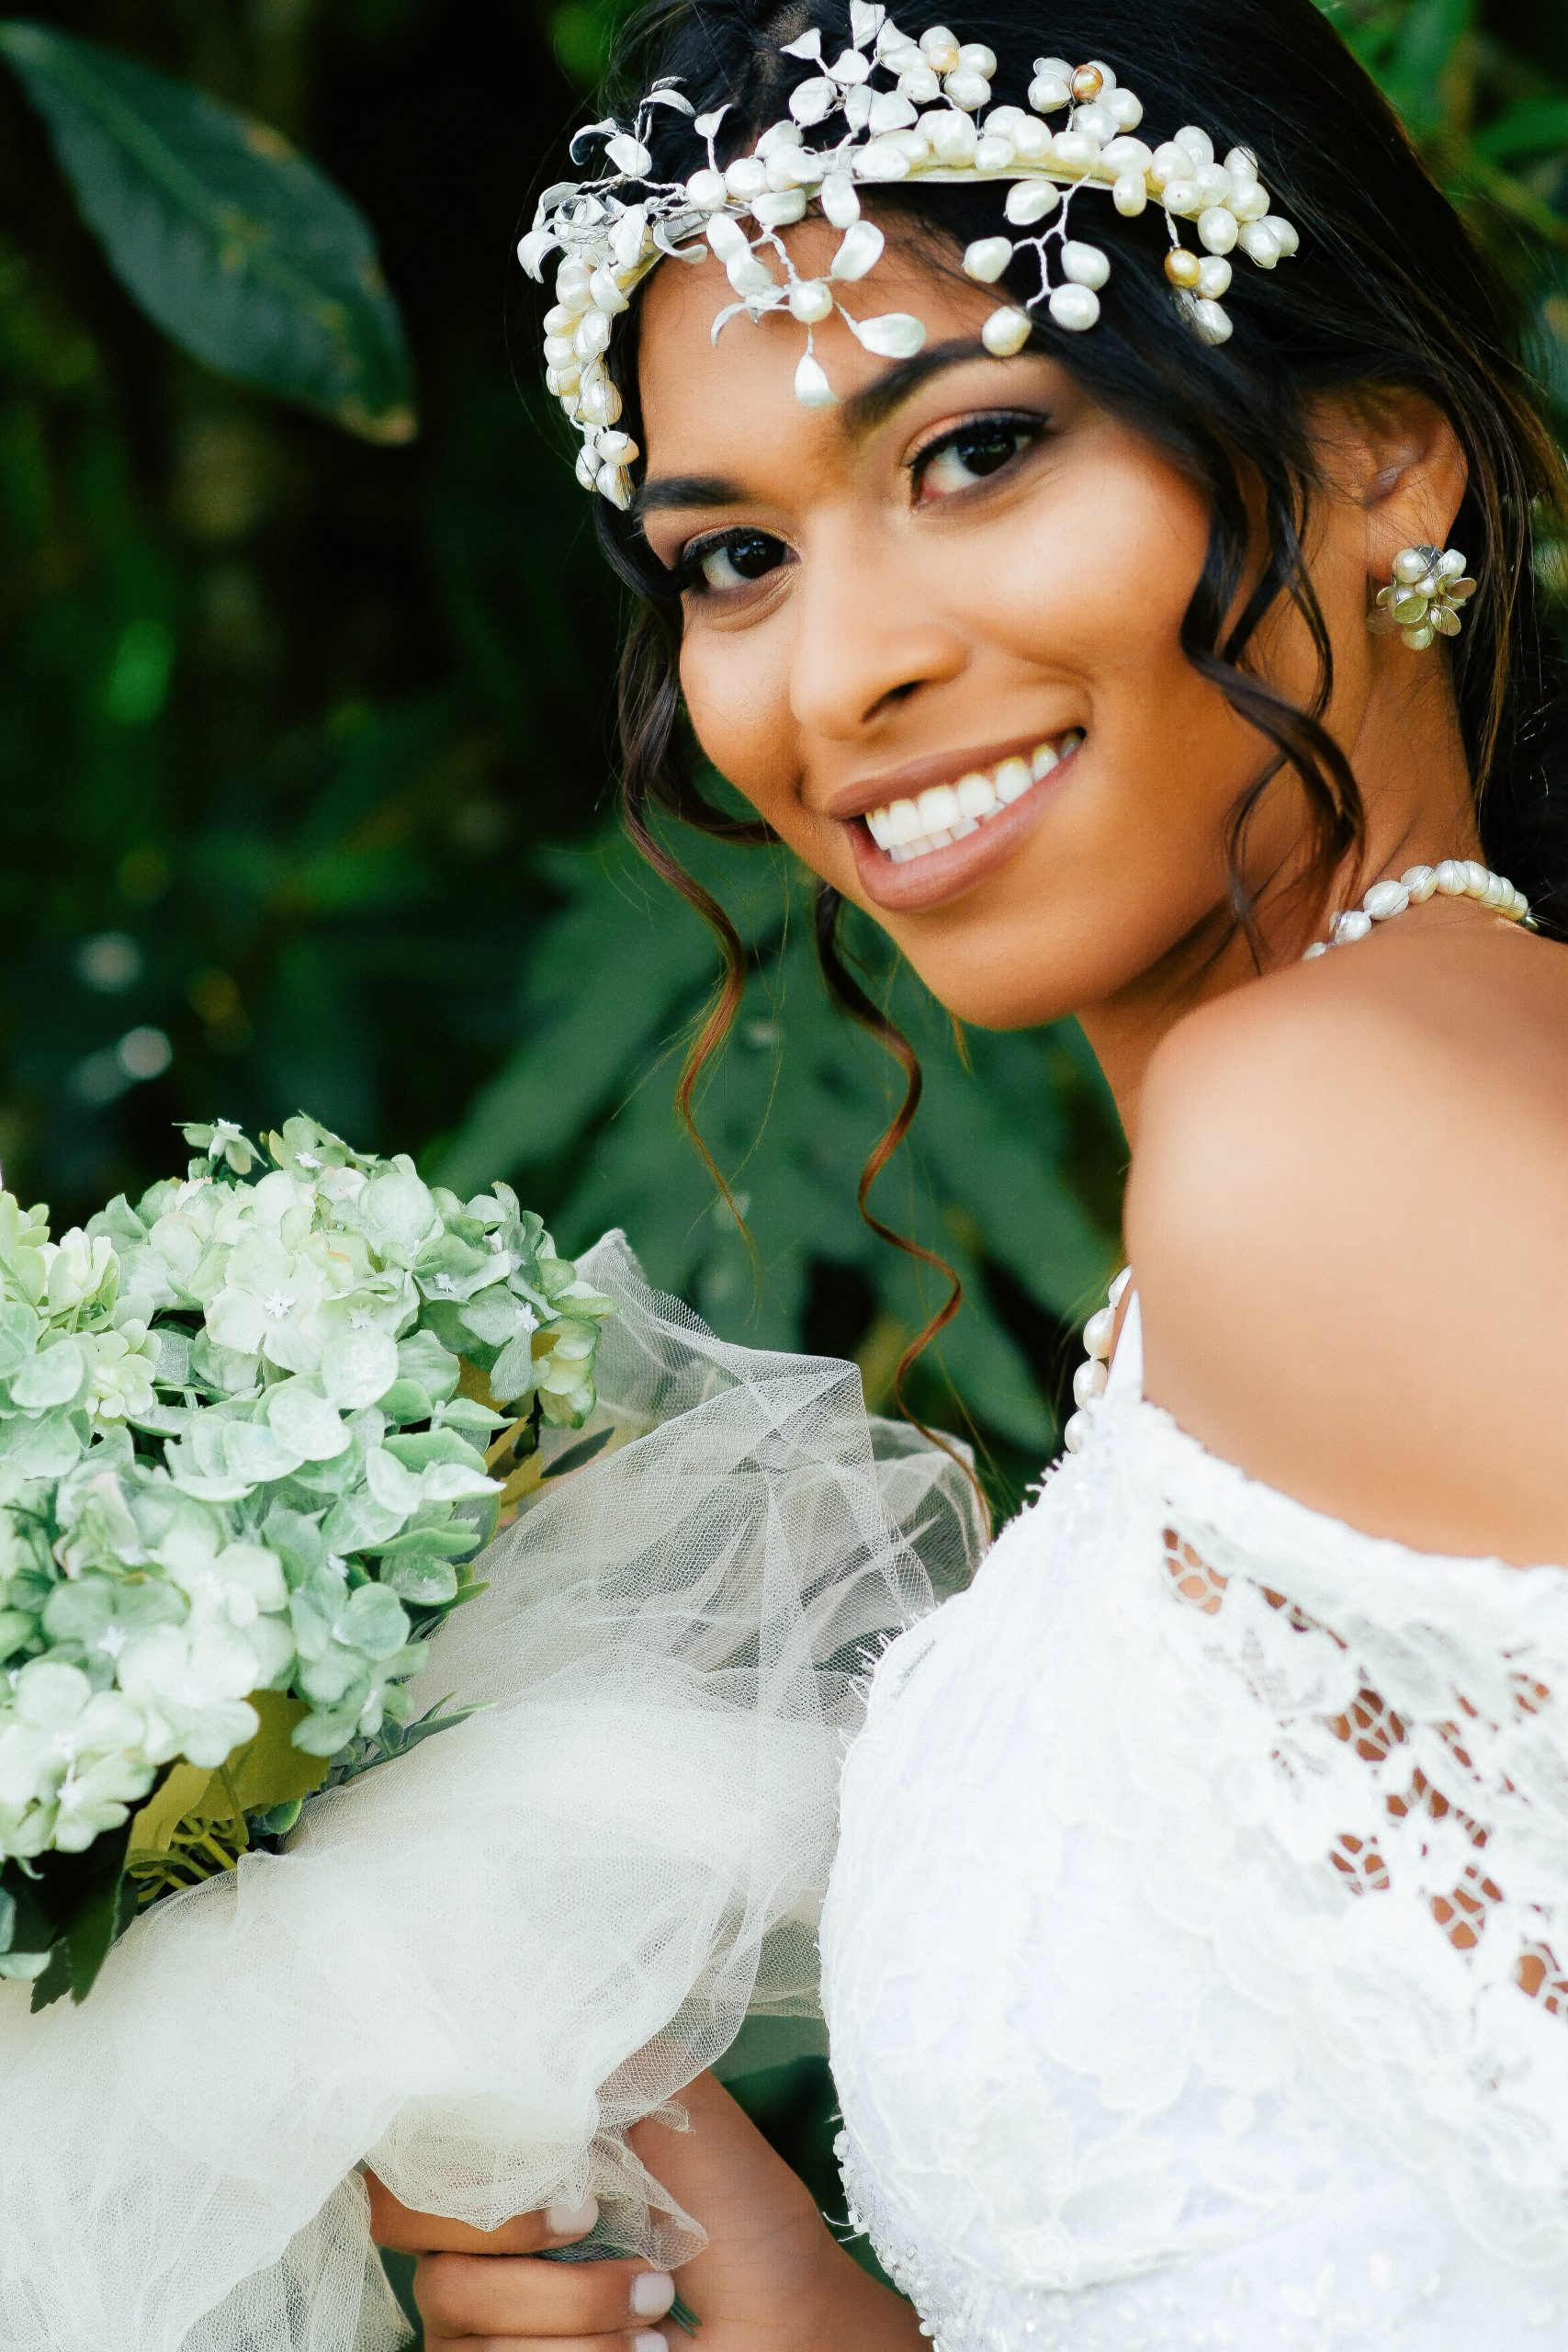 bride with a headdress and holding a white bouquet smiling at the camera